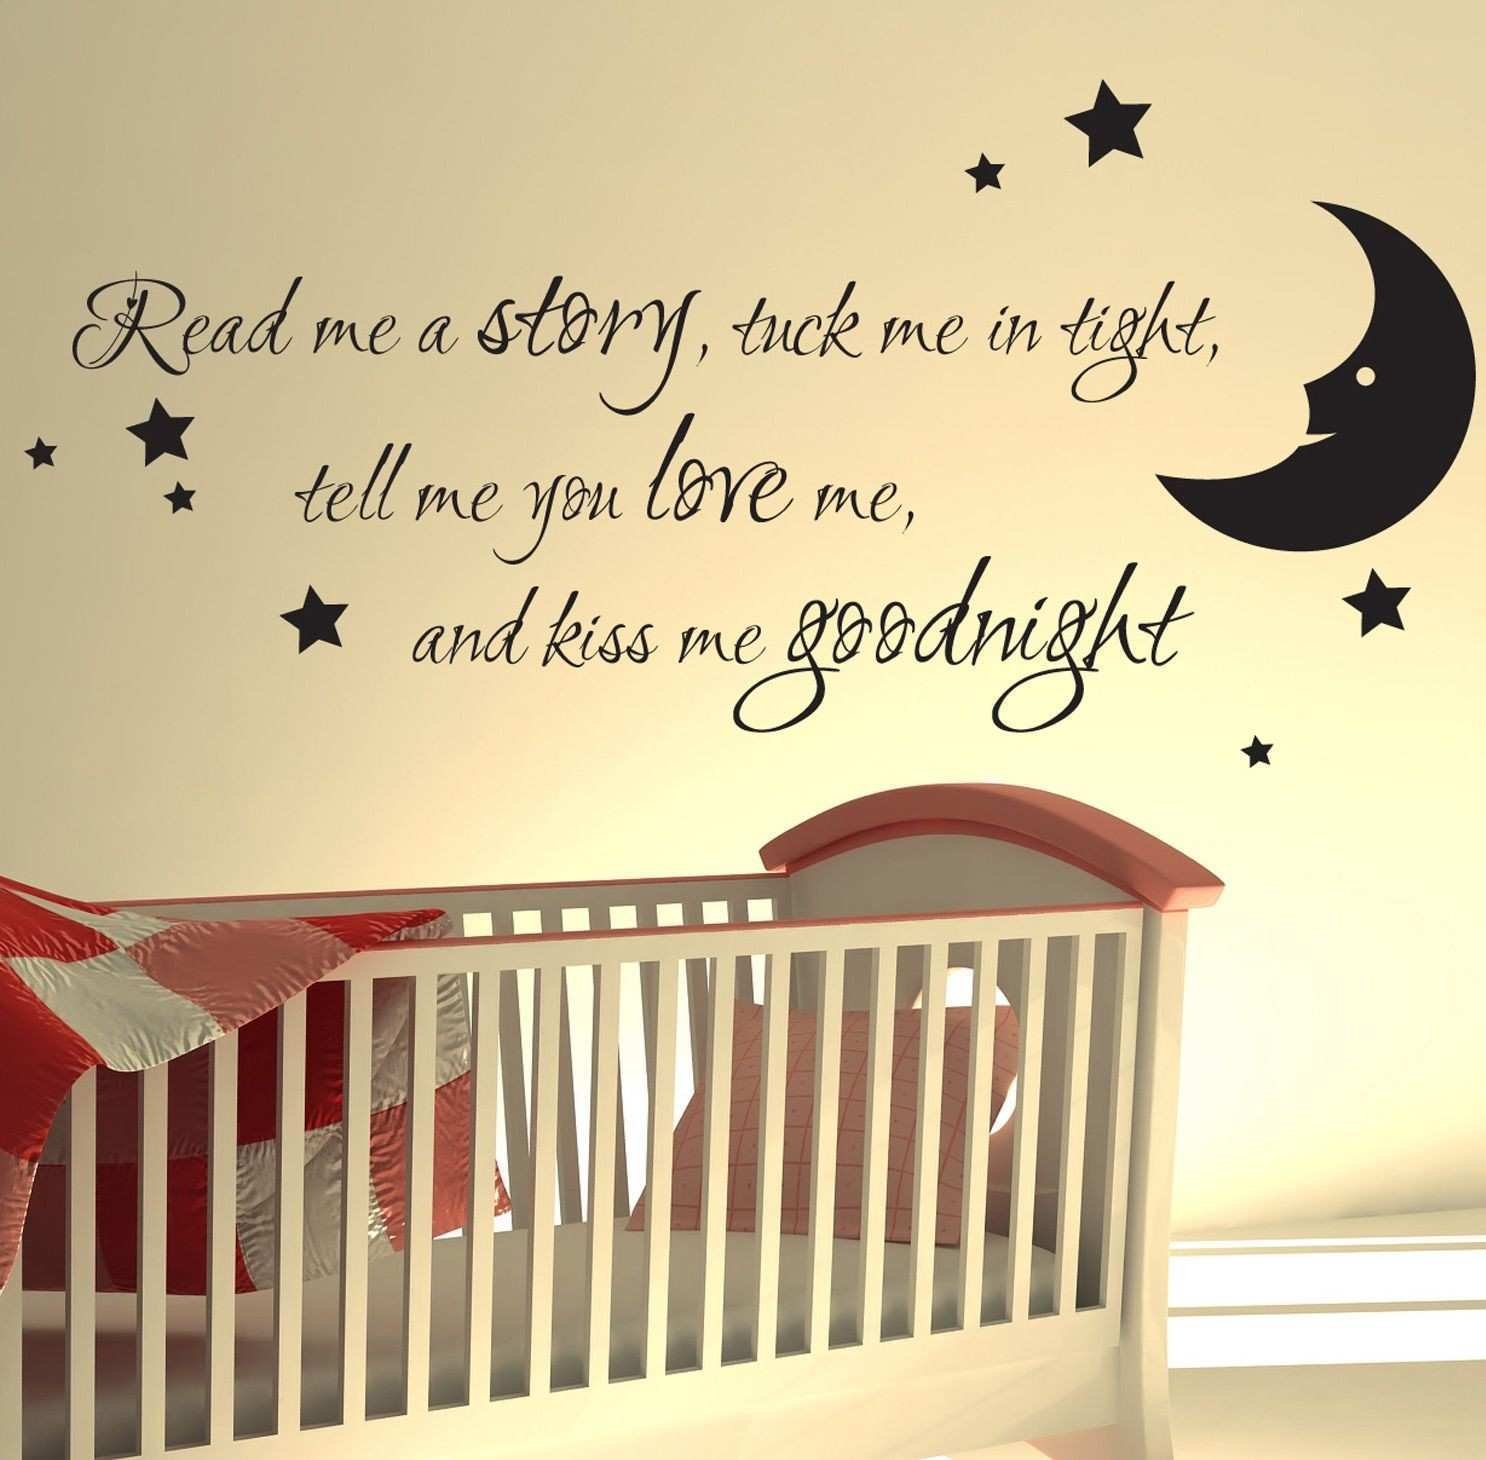 Nursery wall sticker read me a story kids art decals quotes w47